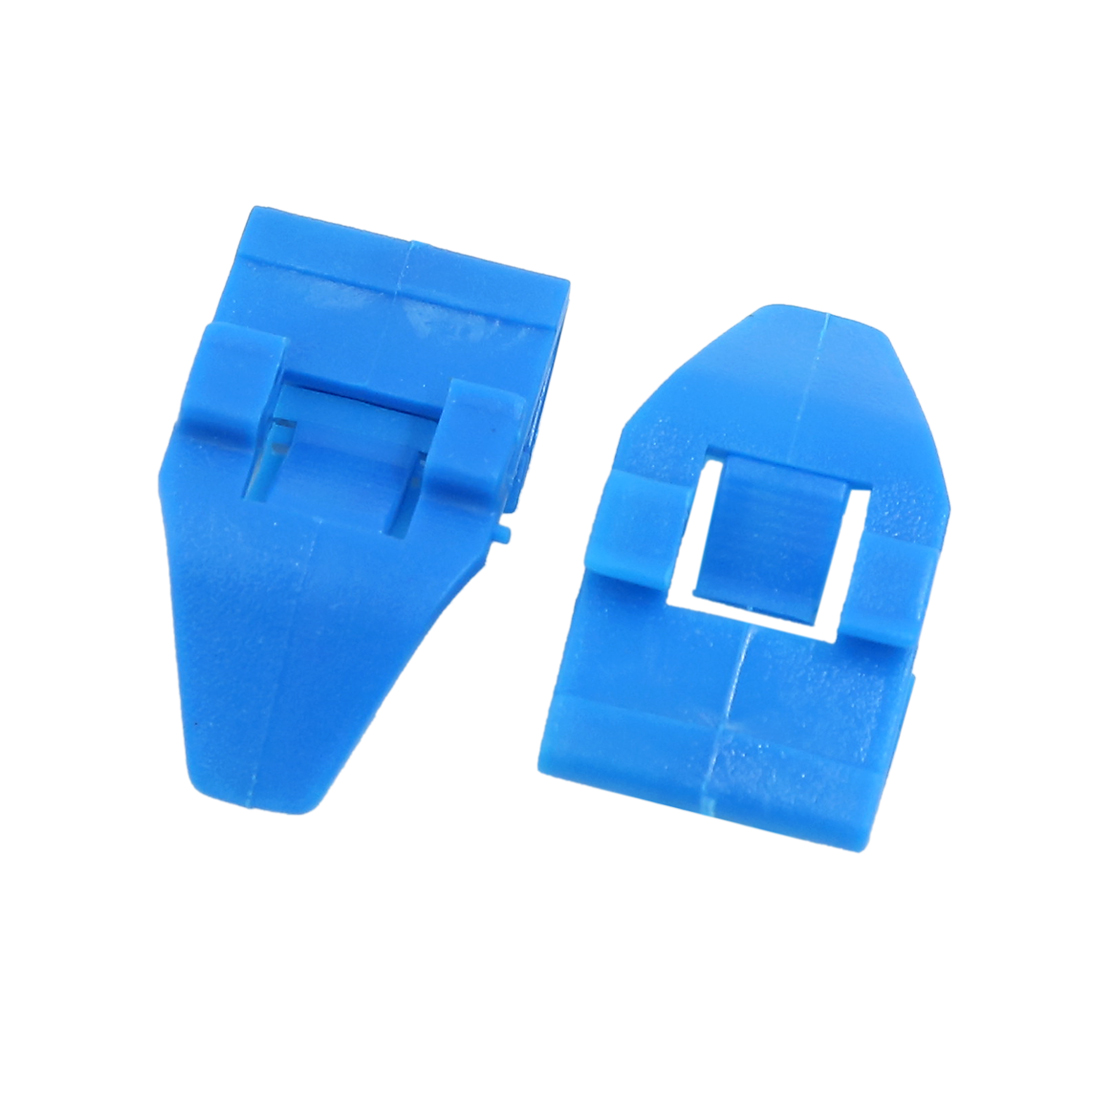 100Pcs Blue Auto Vehicle Dash Dashboard Trim Plastic Rivet Fastener 36mm x 20mm